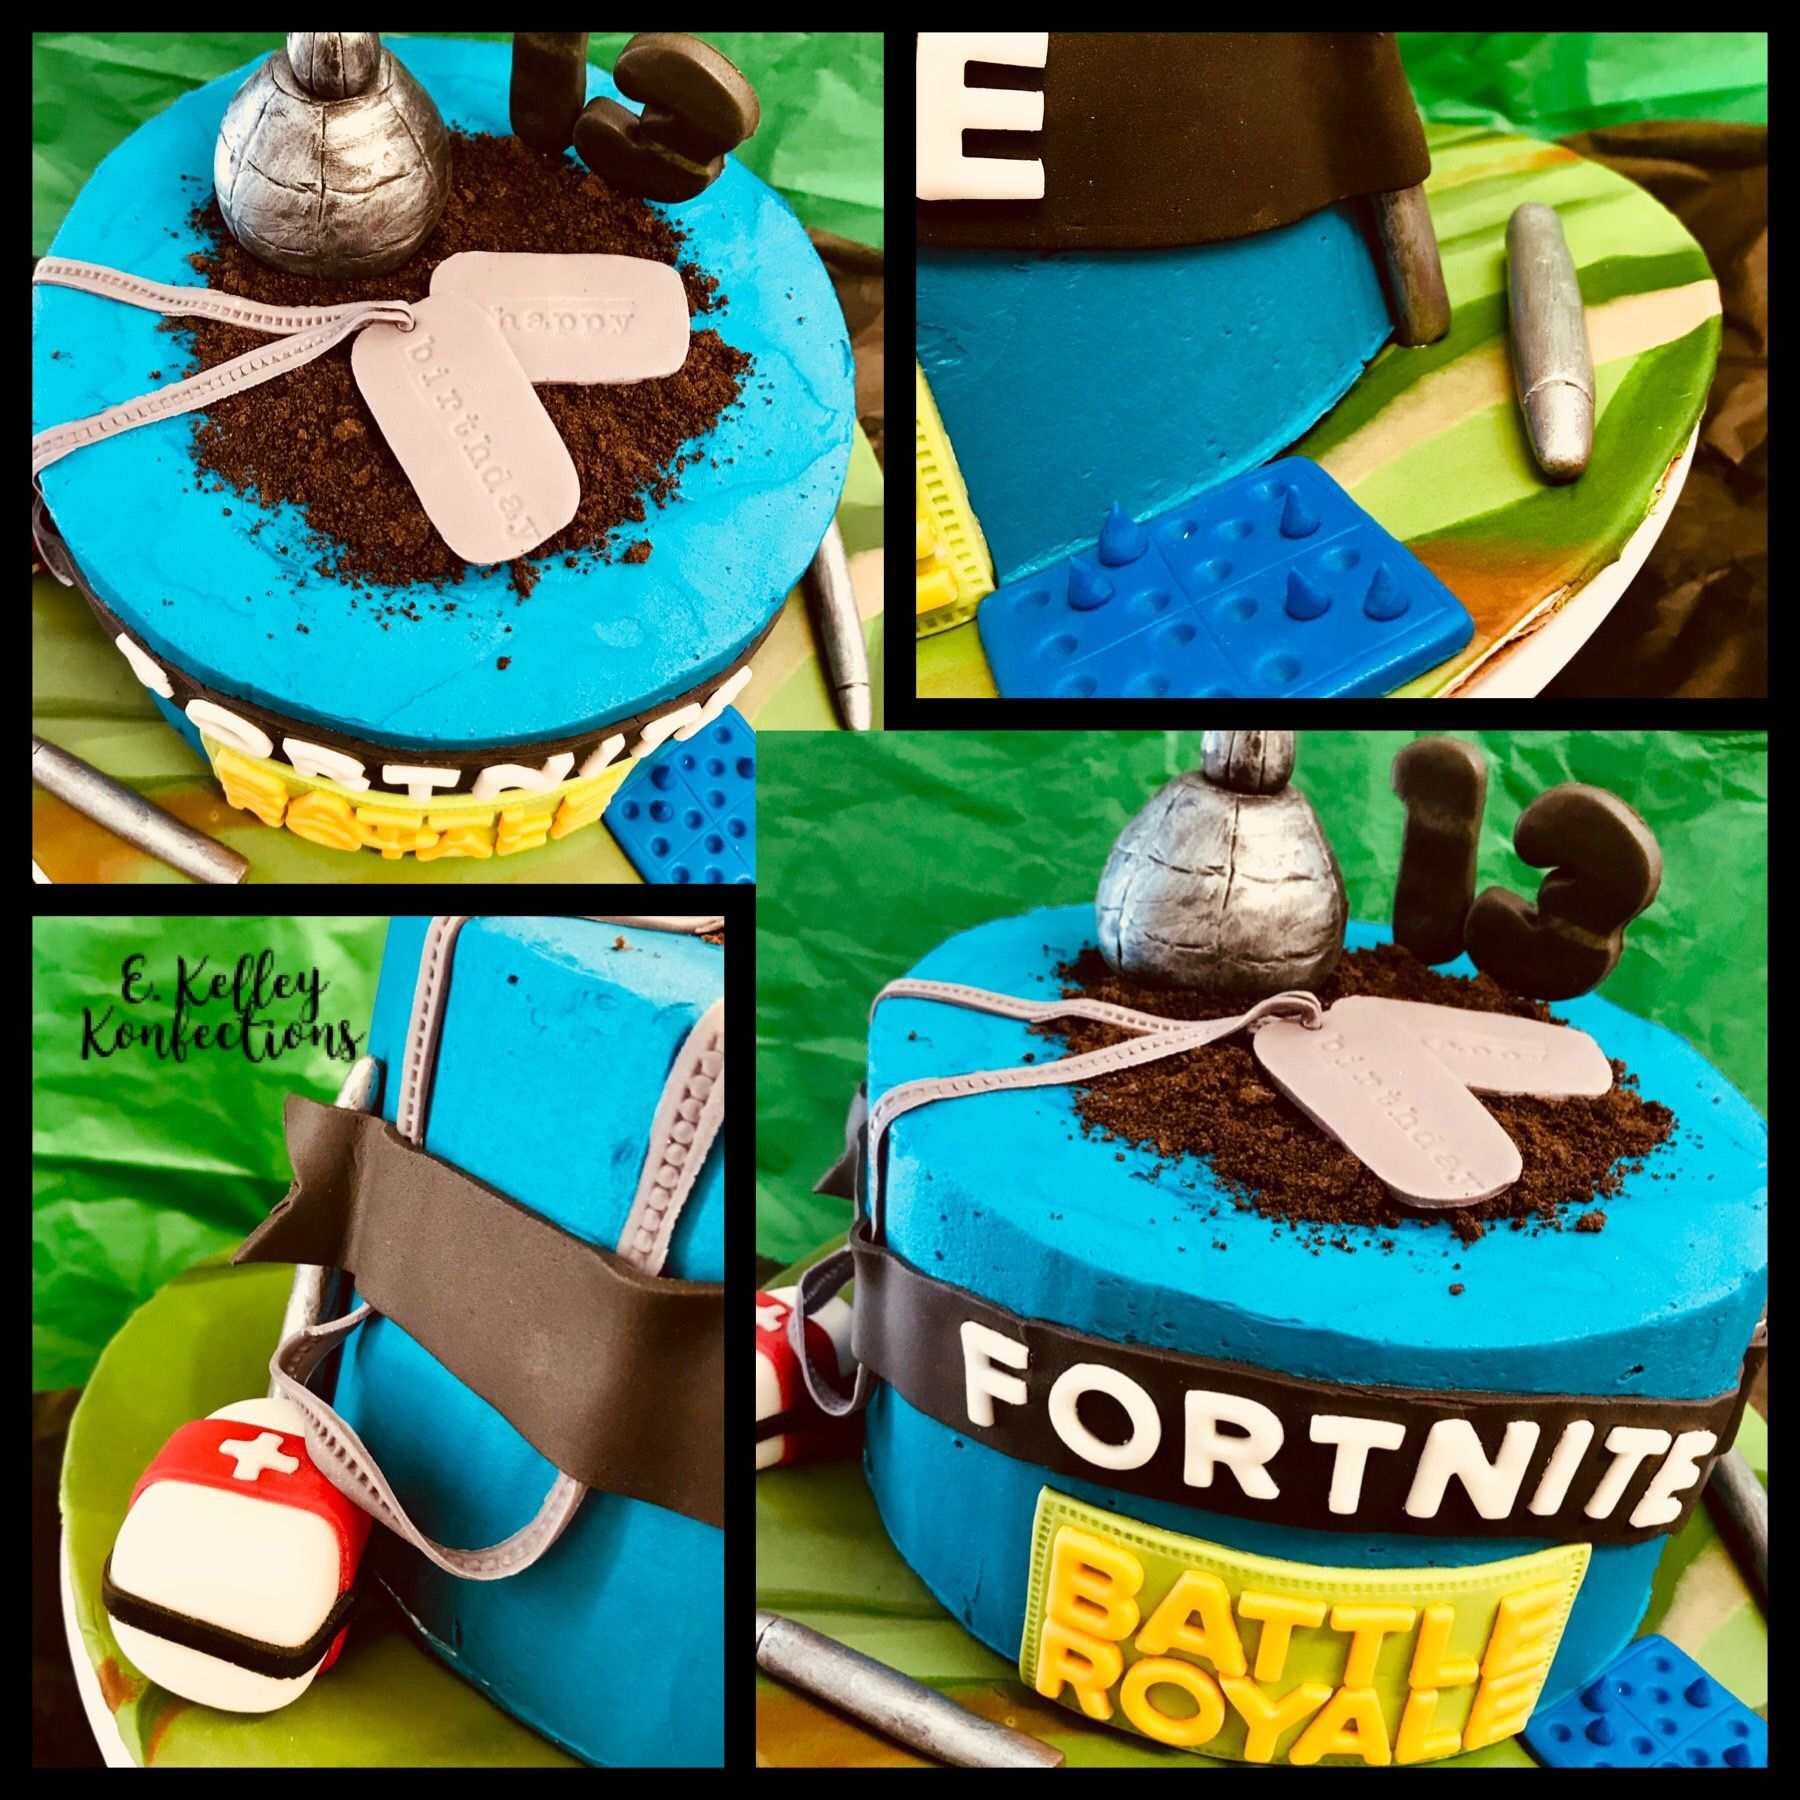 Fortnite Cake 13th Birthday Cake Teenager Birthday Cake